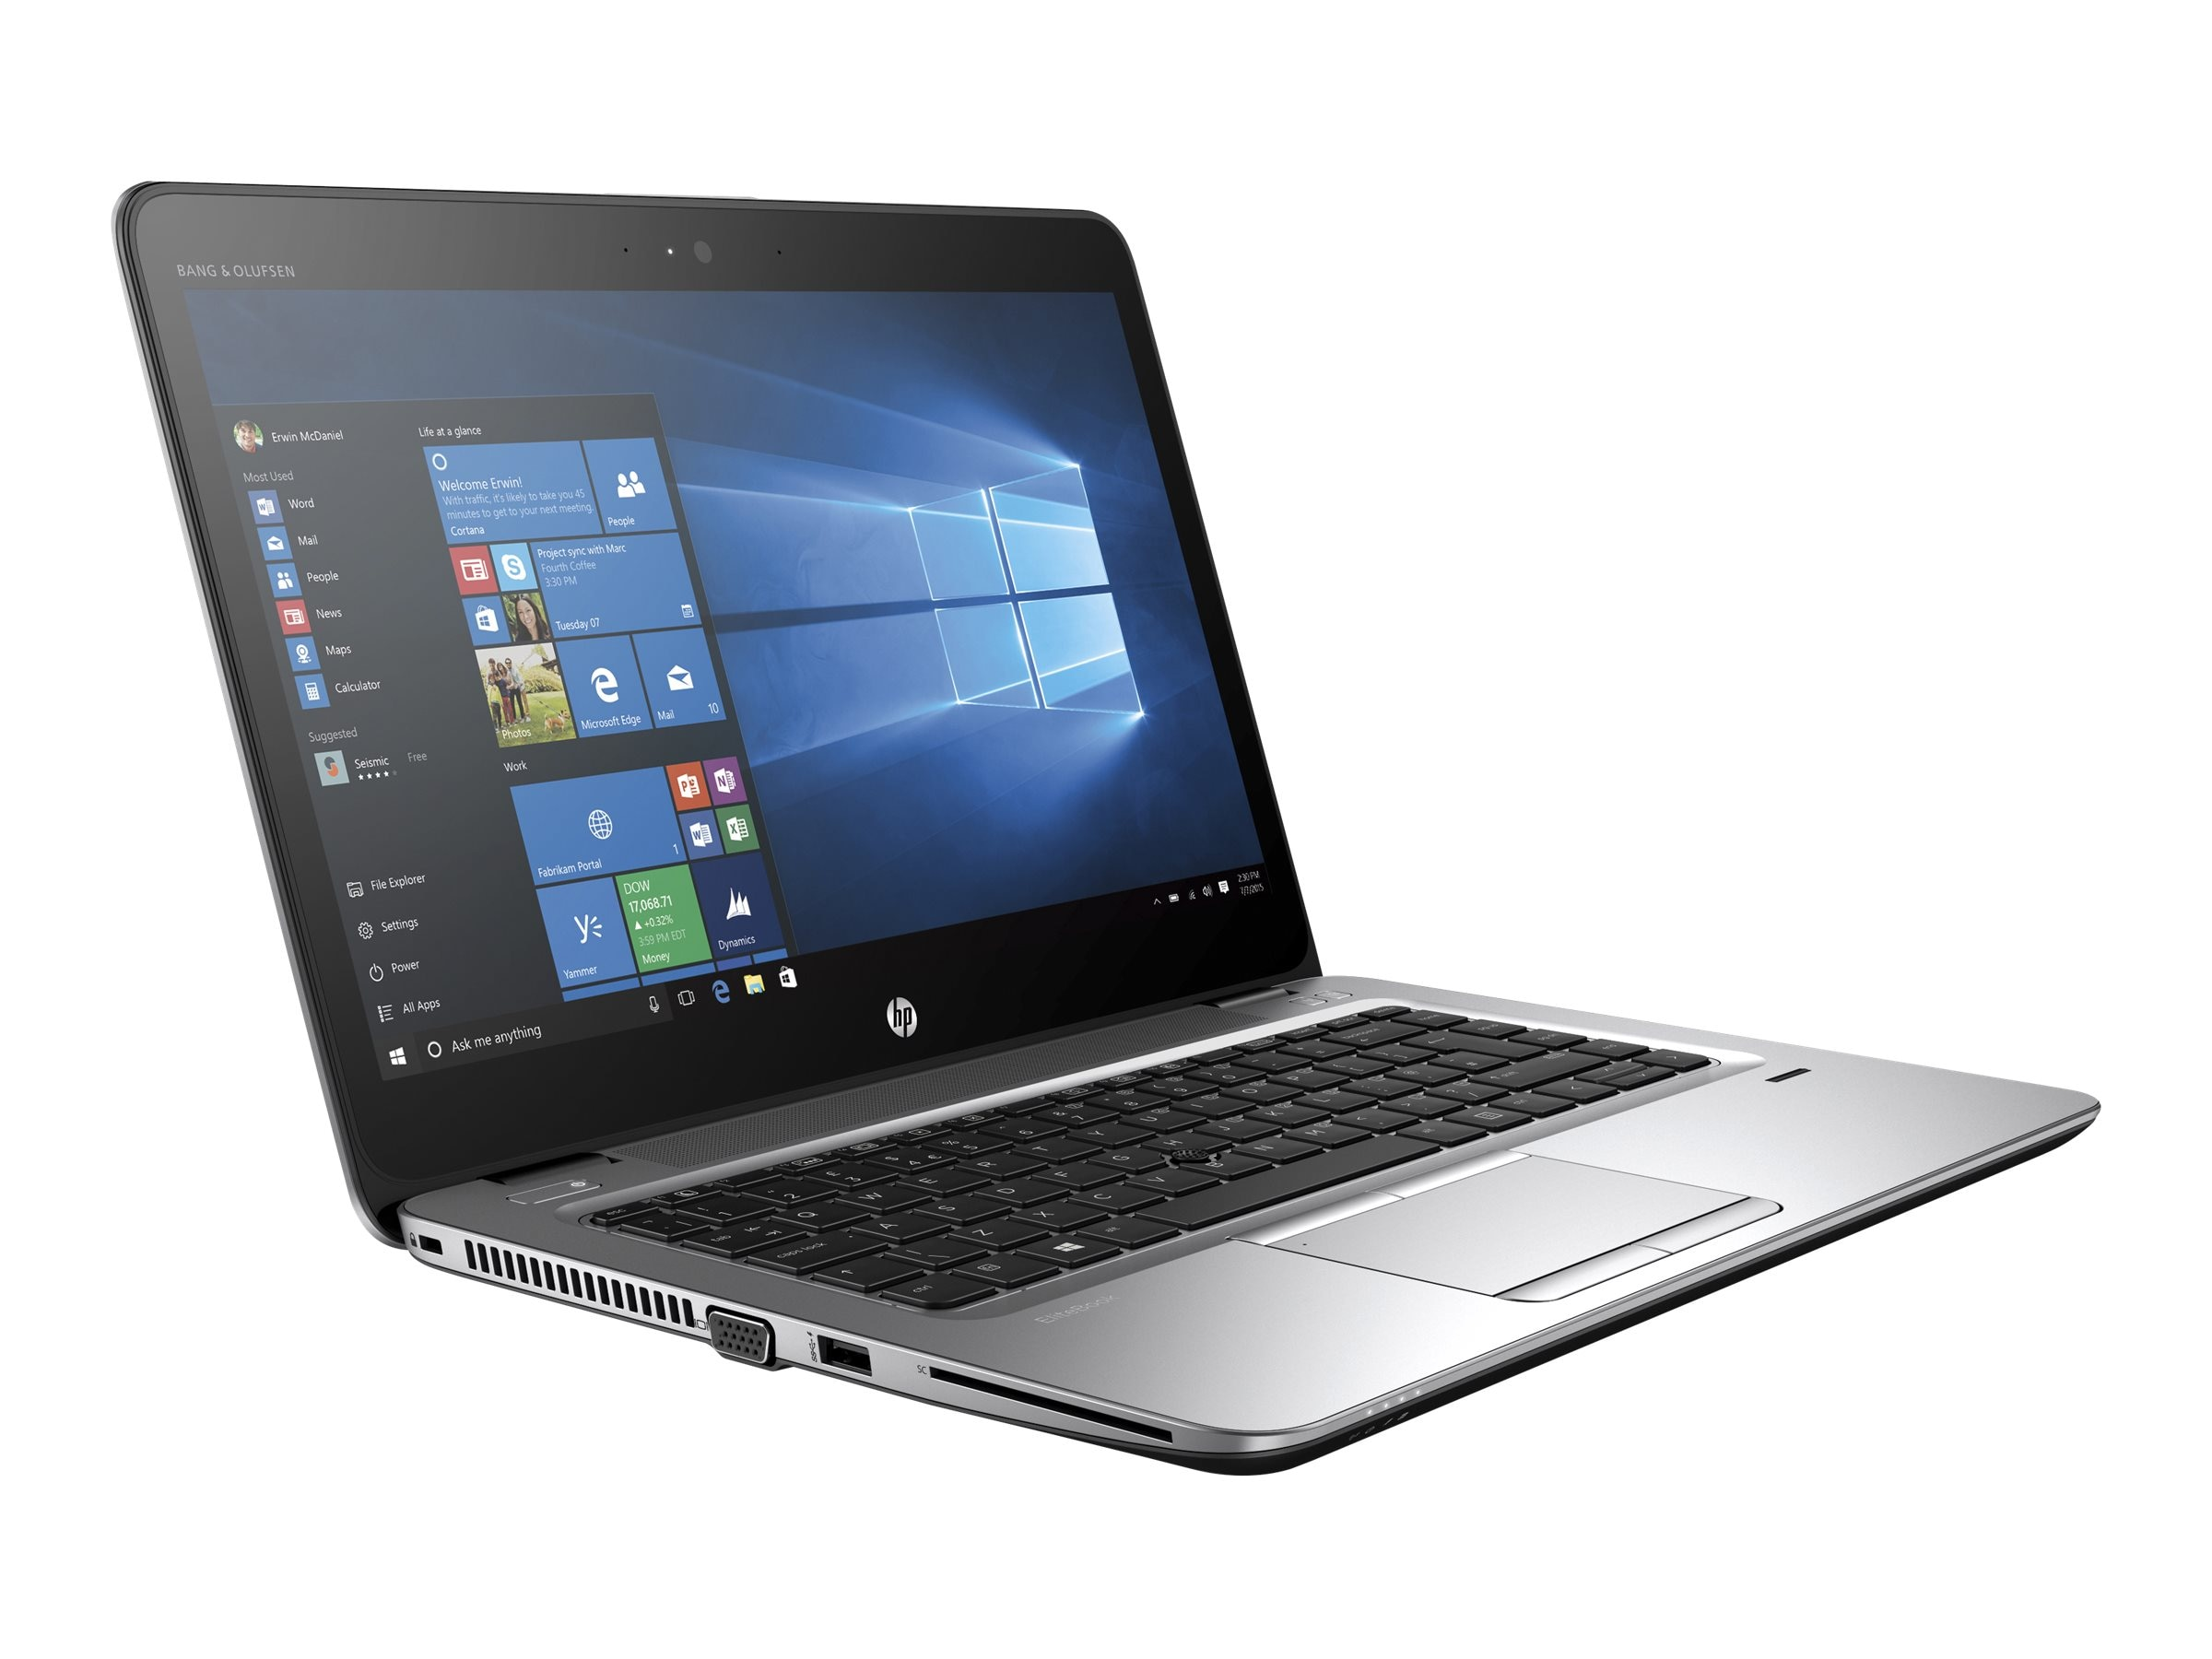 HP EliteBook 745 G3 1.6GHz A8 14in display, P5W11UT#ABA